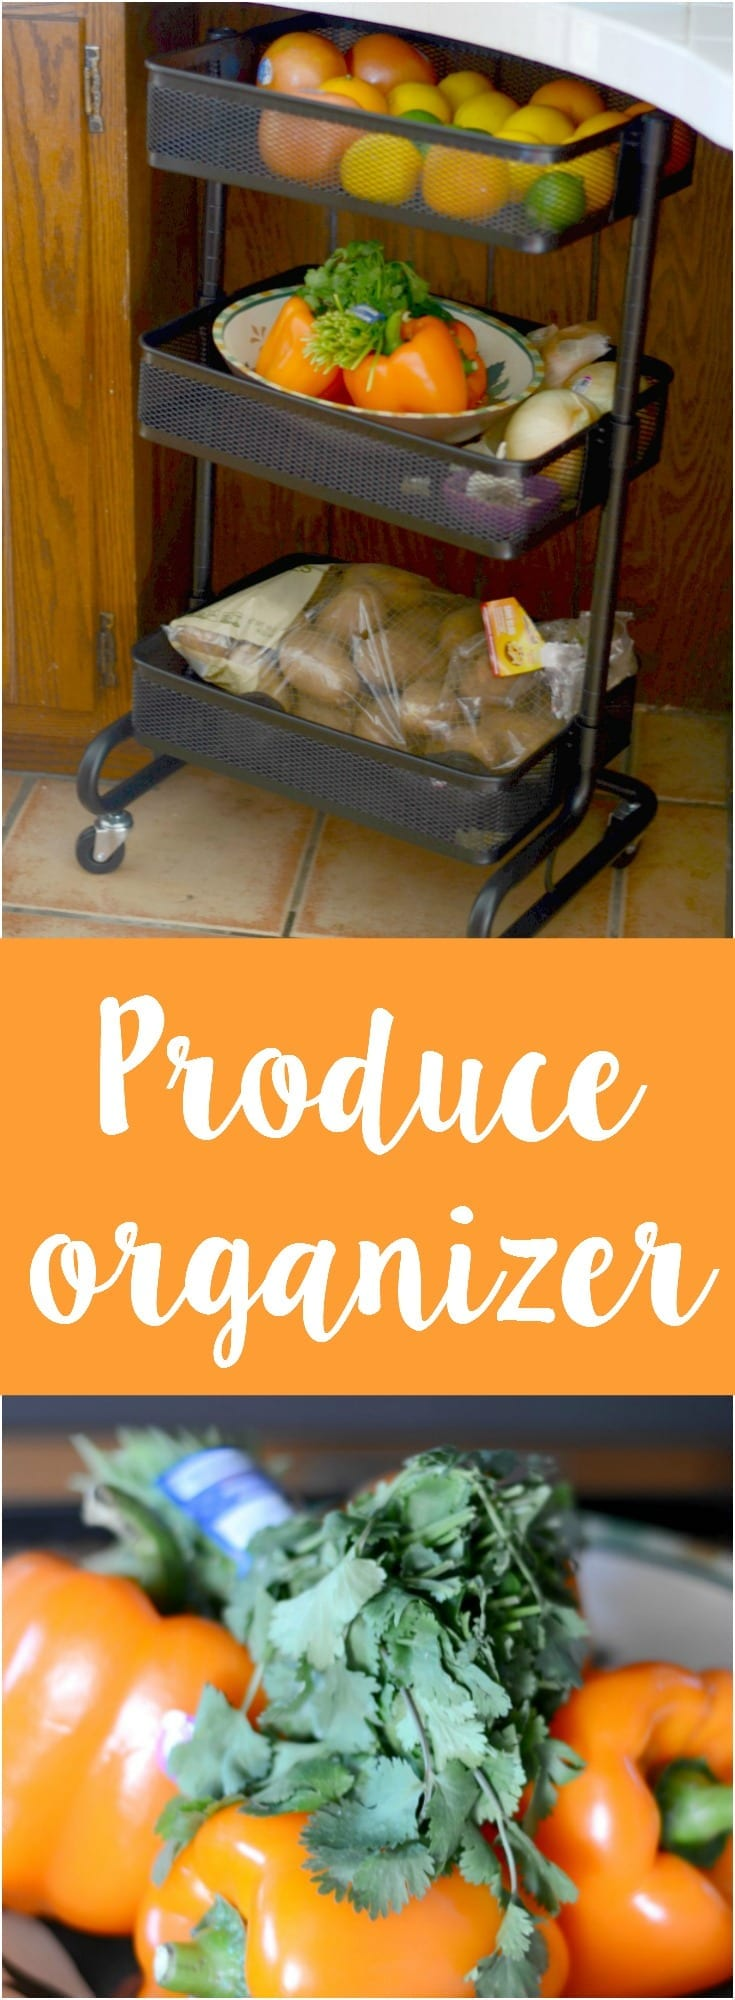 Fruit and vegetable organizer plus other greats ideas!